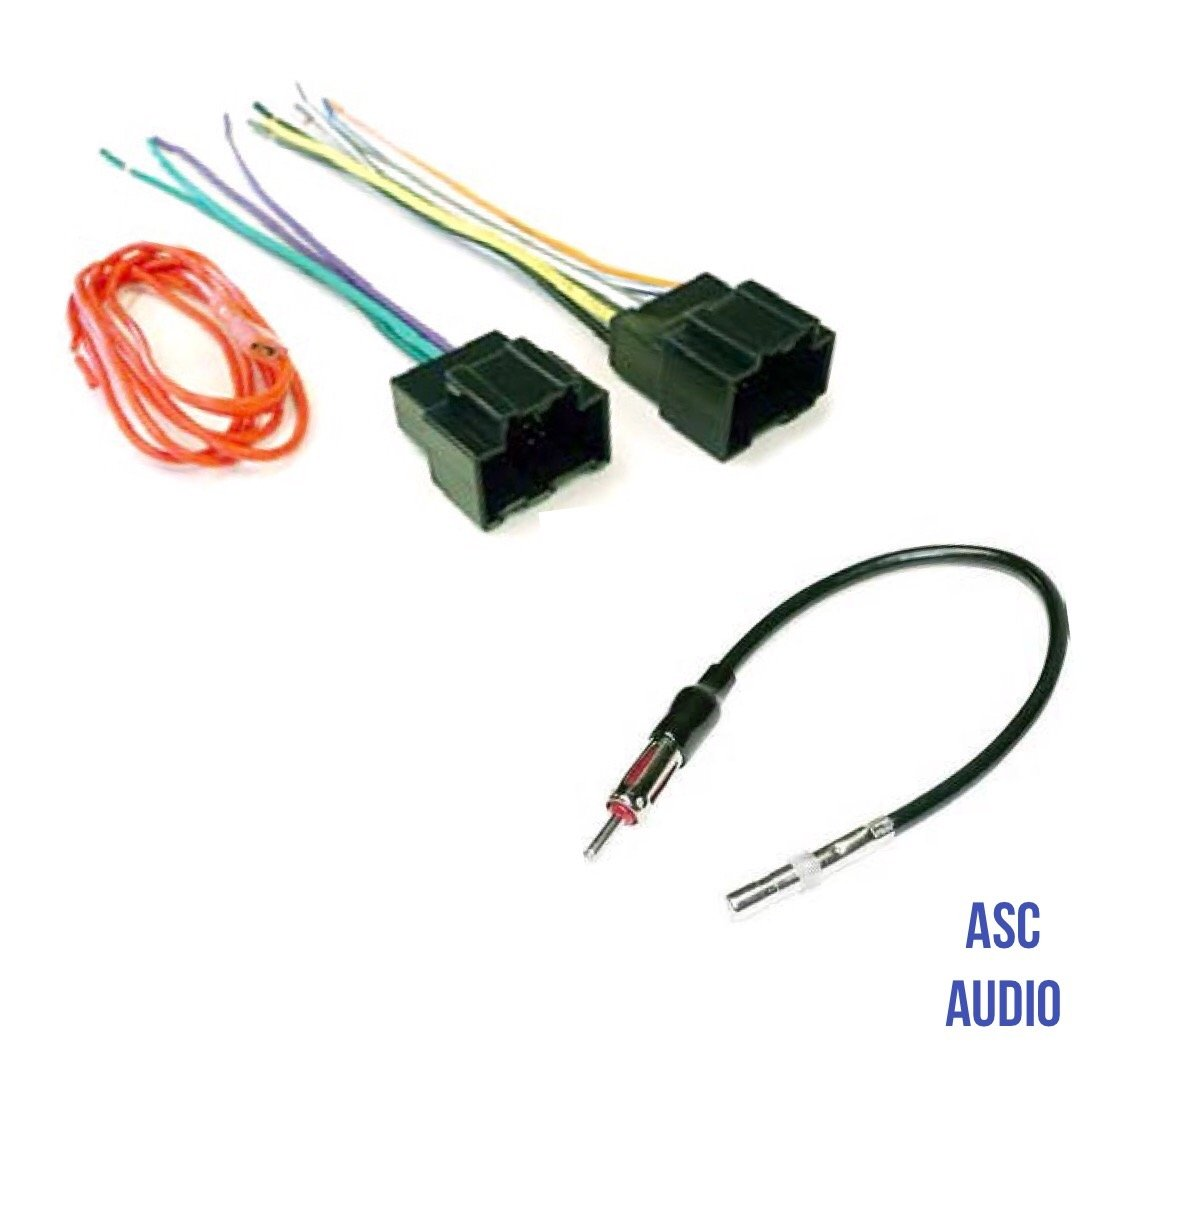 asc audio car stereo radio wire harness plug and antenna adapter asc audio car stereo radio wire harness plug and antenna adapter for some chevrolet 2007 2010 cobalt 2006 2011 hhr 2008 12 bu pontiac 07 10 g5